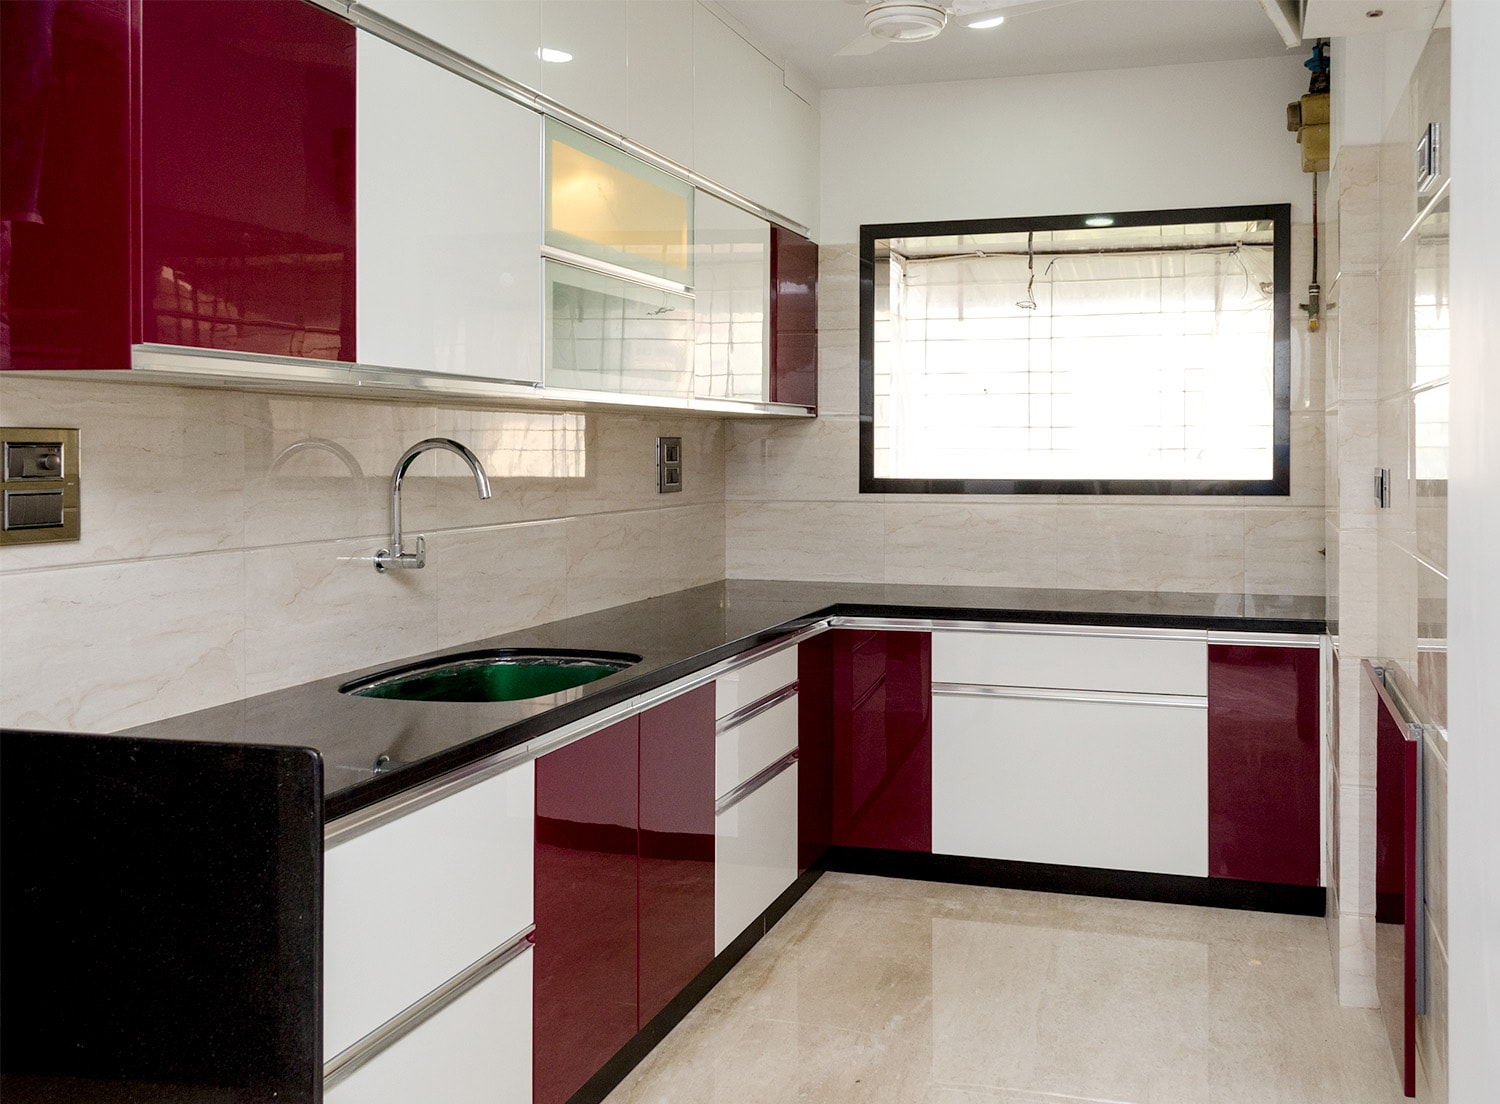 Kitchen Design Online Shopping India Home Interiors By Homelane Modular Kitchens Wardrobes